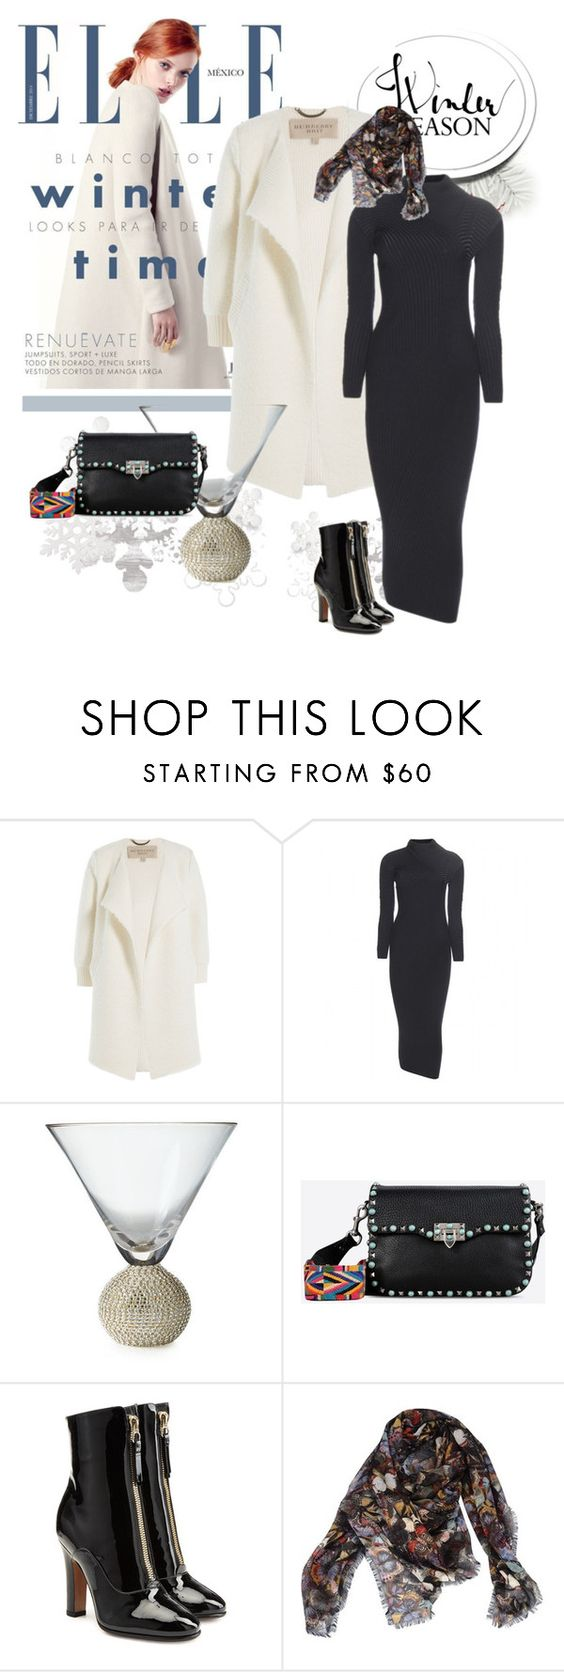 """December 12"" by anny951 ❤ liked on Polyvore featuring Delpozo, Burberry, Acne Studios and Valentino"